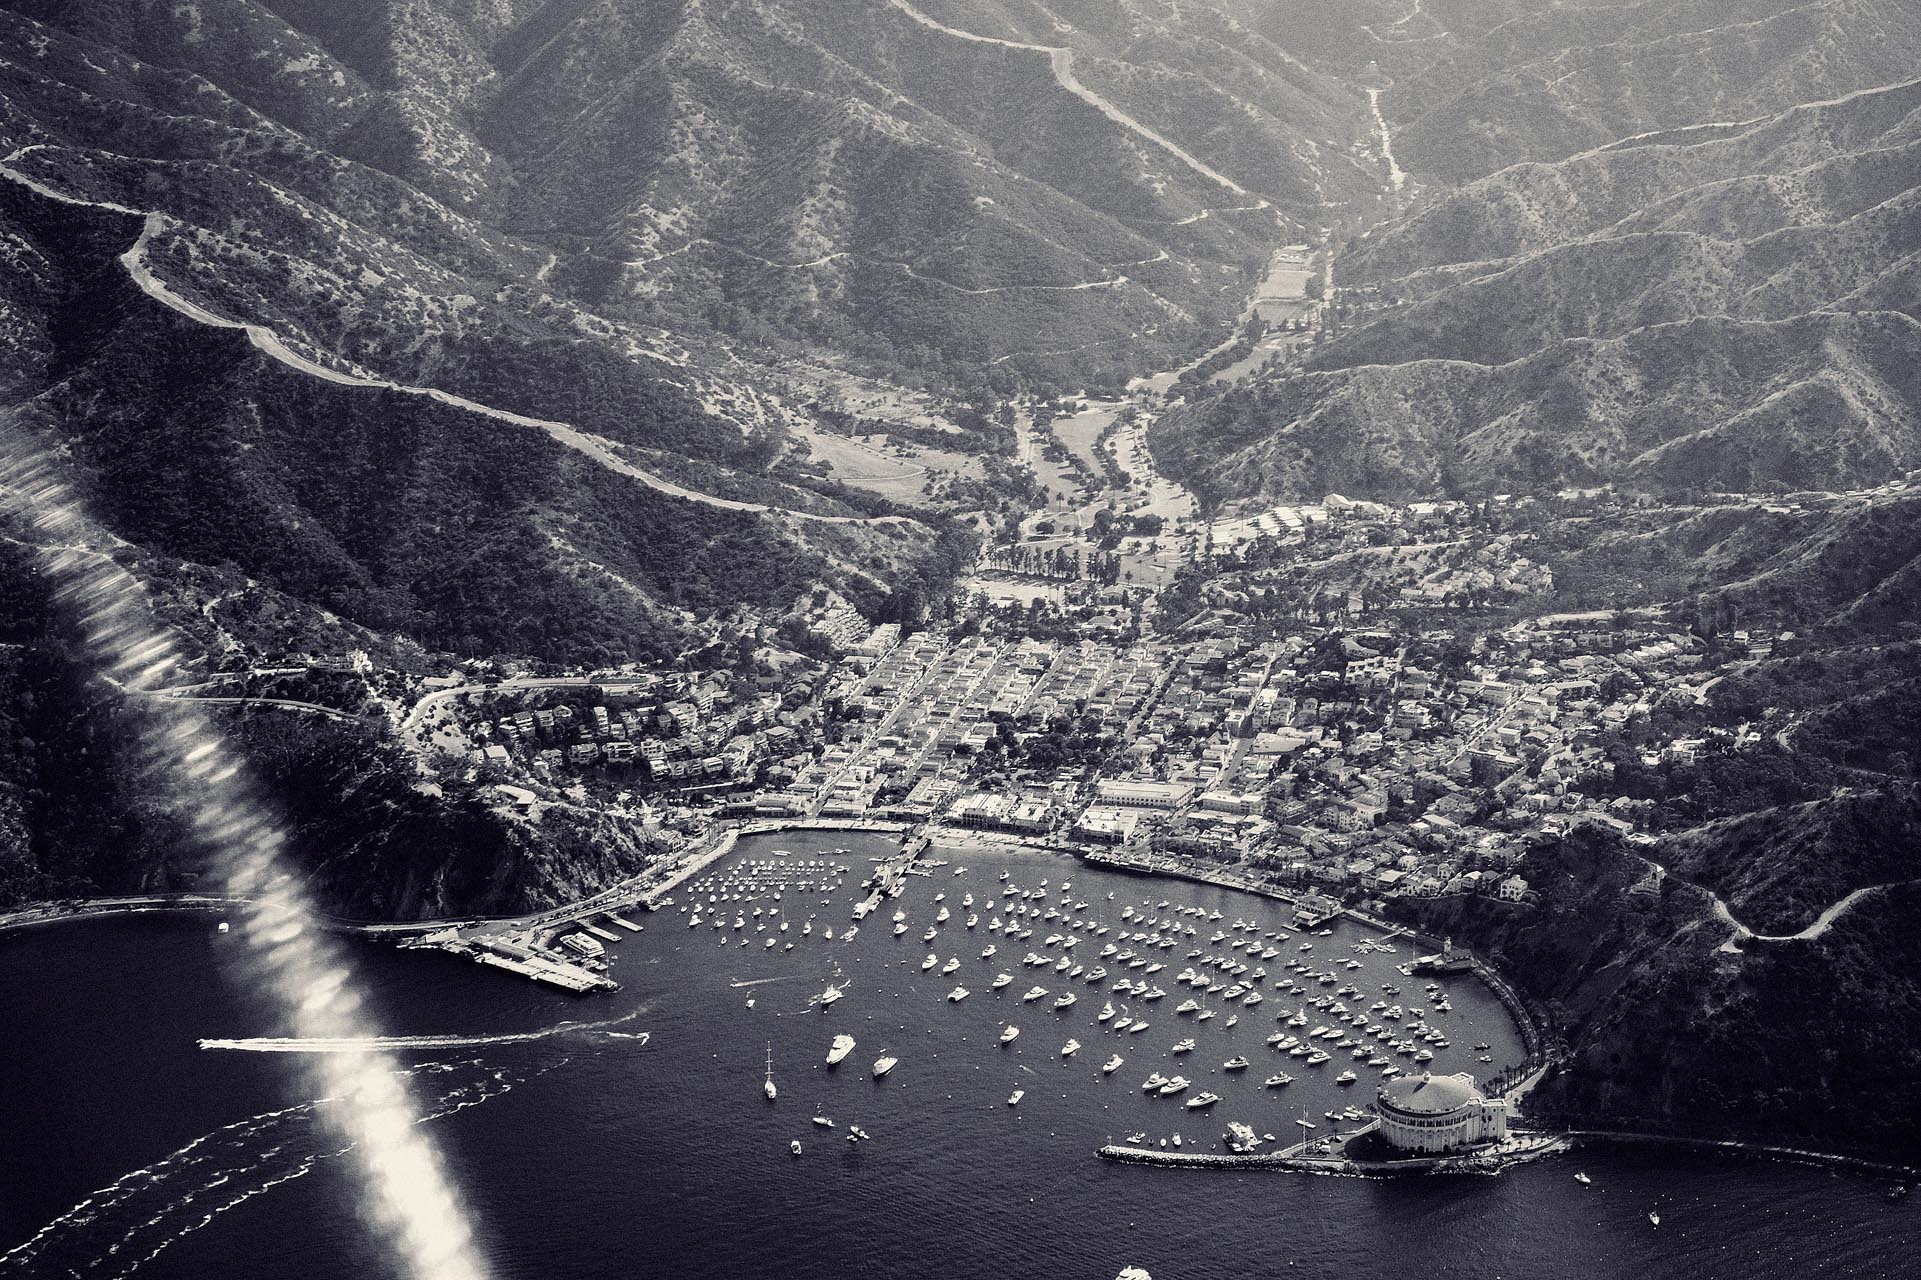 CatalinaIsland_PhillipAngert - 15.jpg